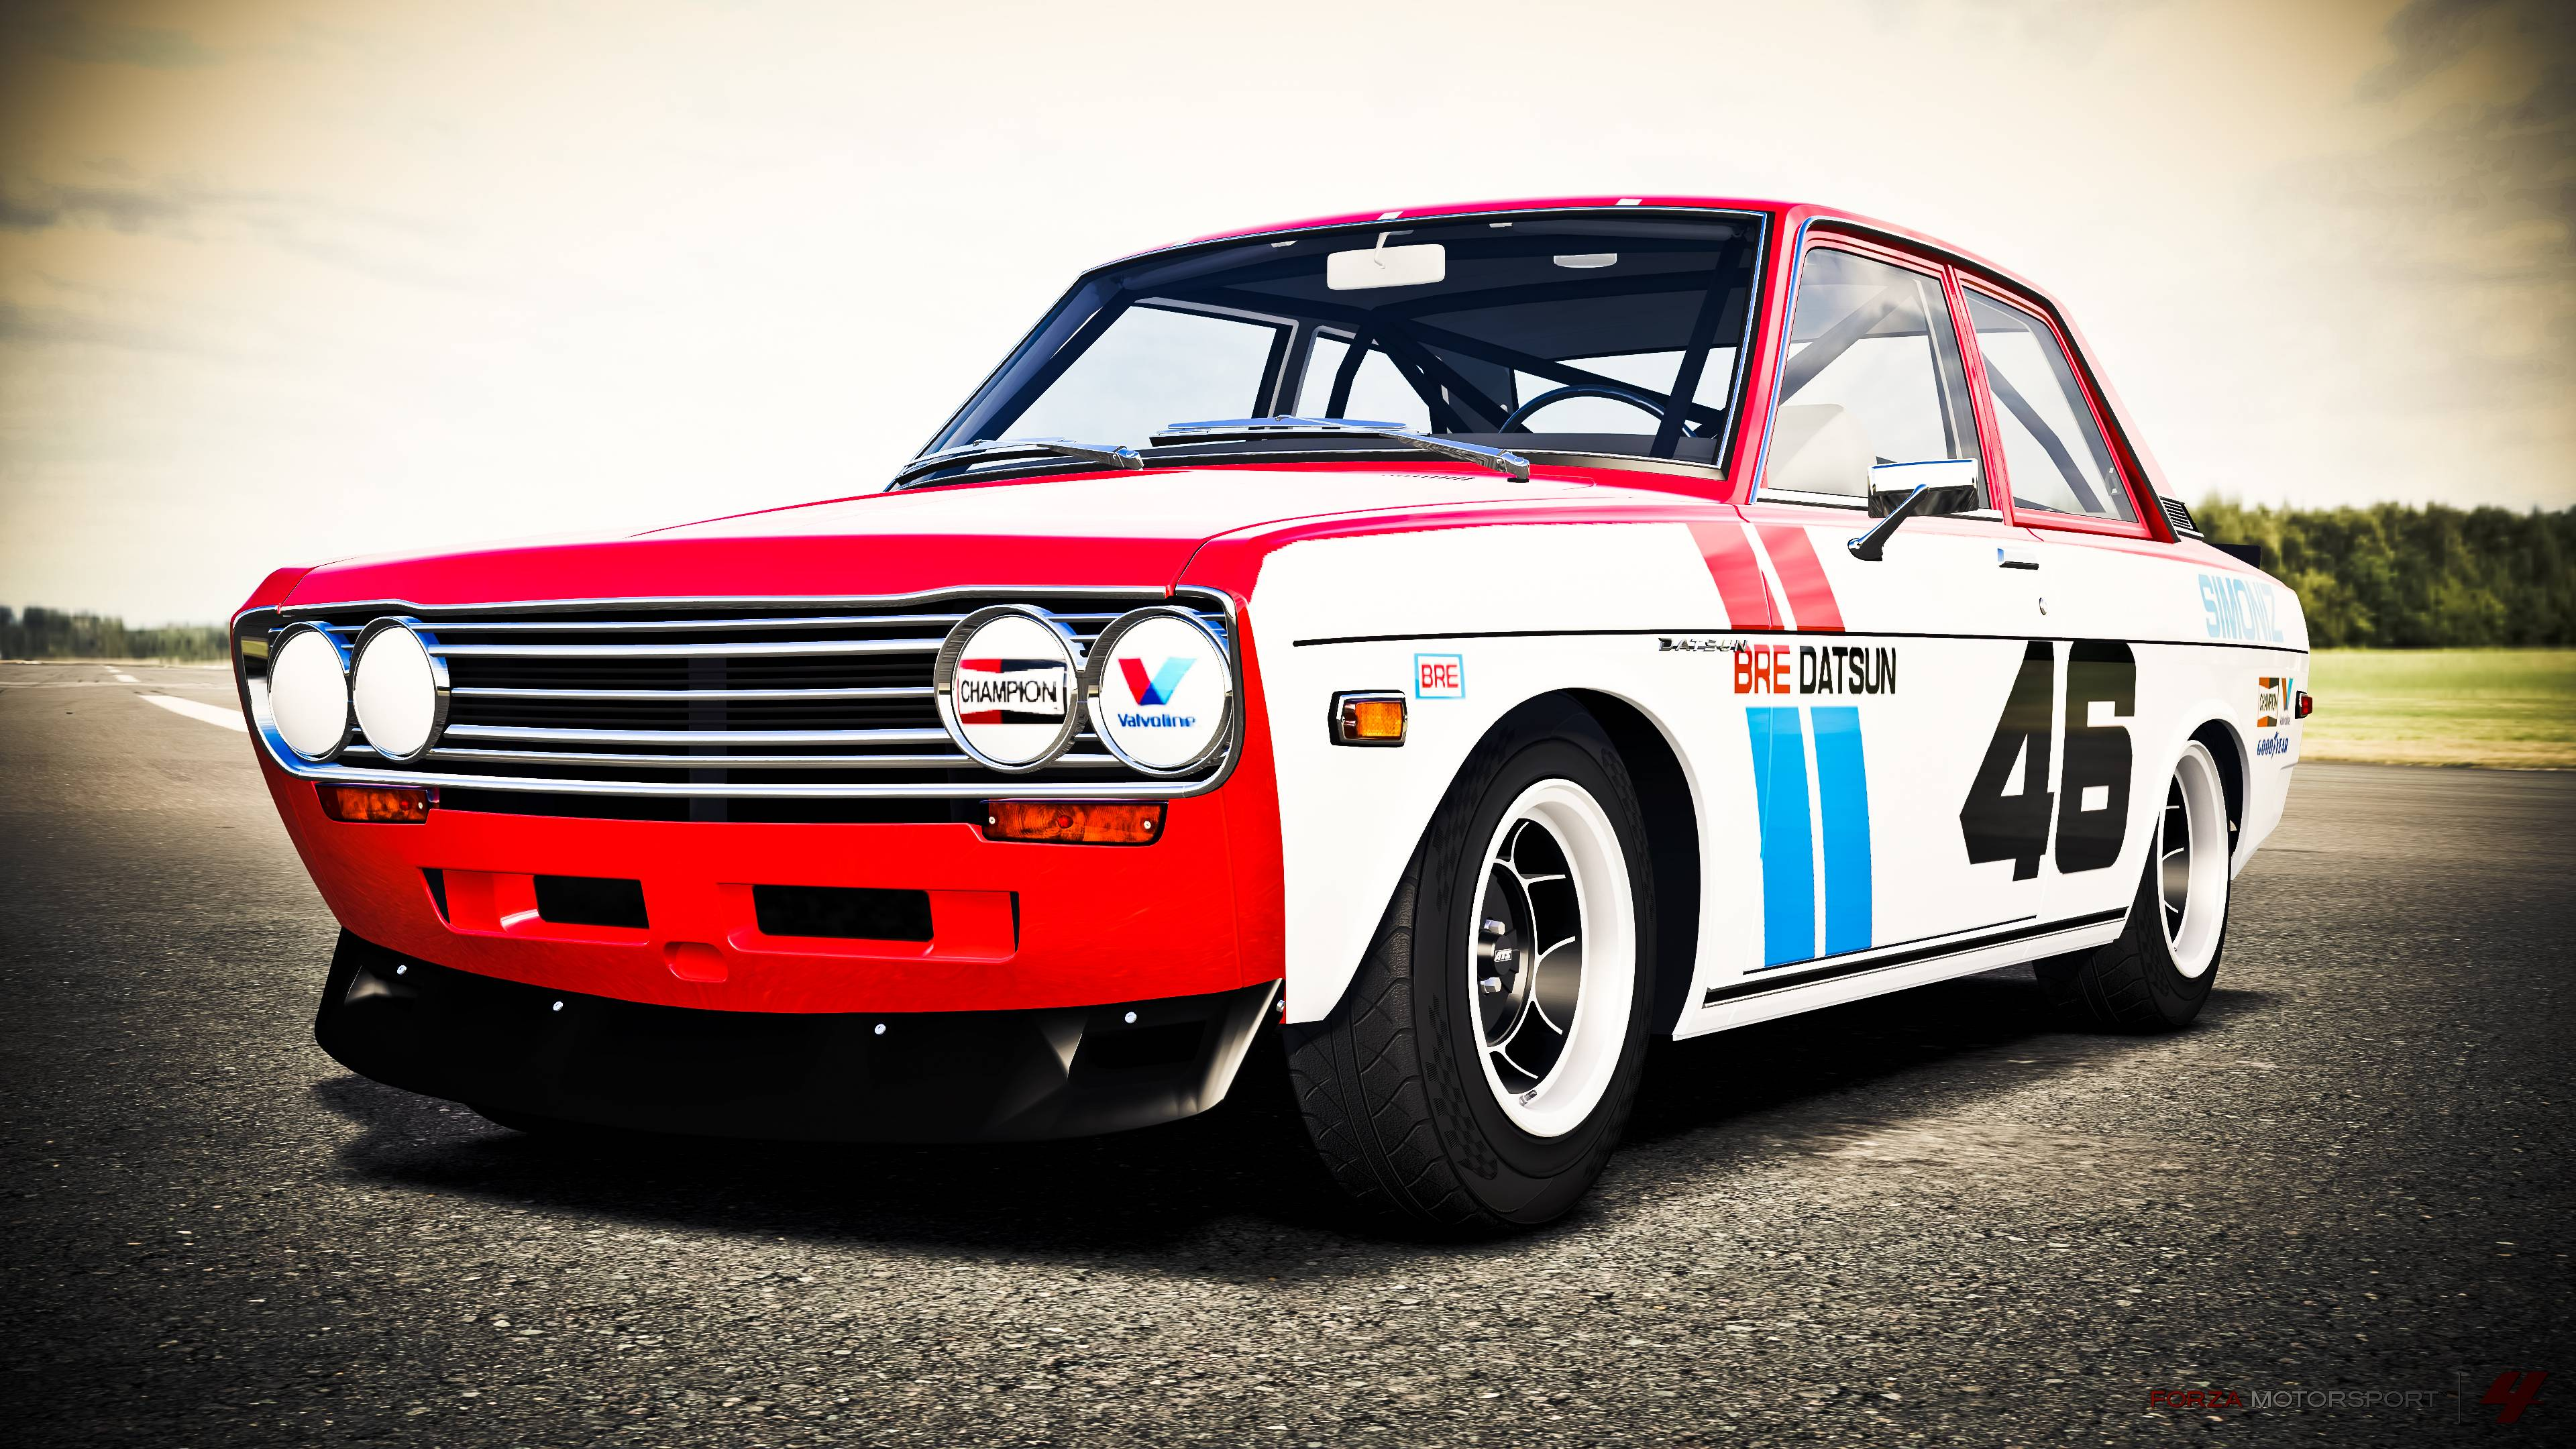 Datsun 510 Wallpapers 3840x2160